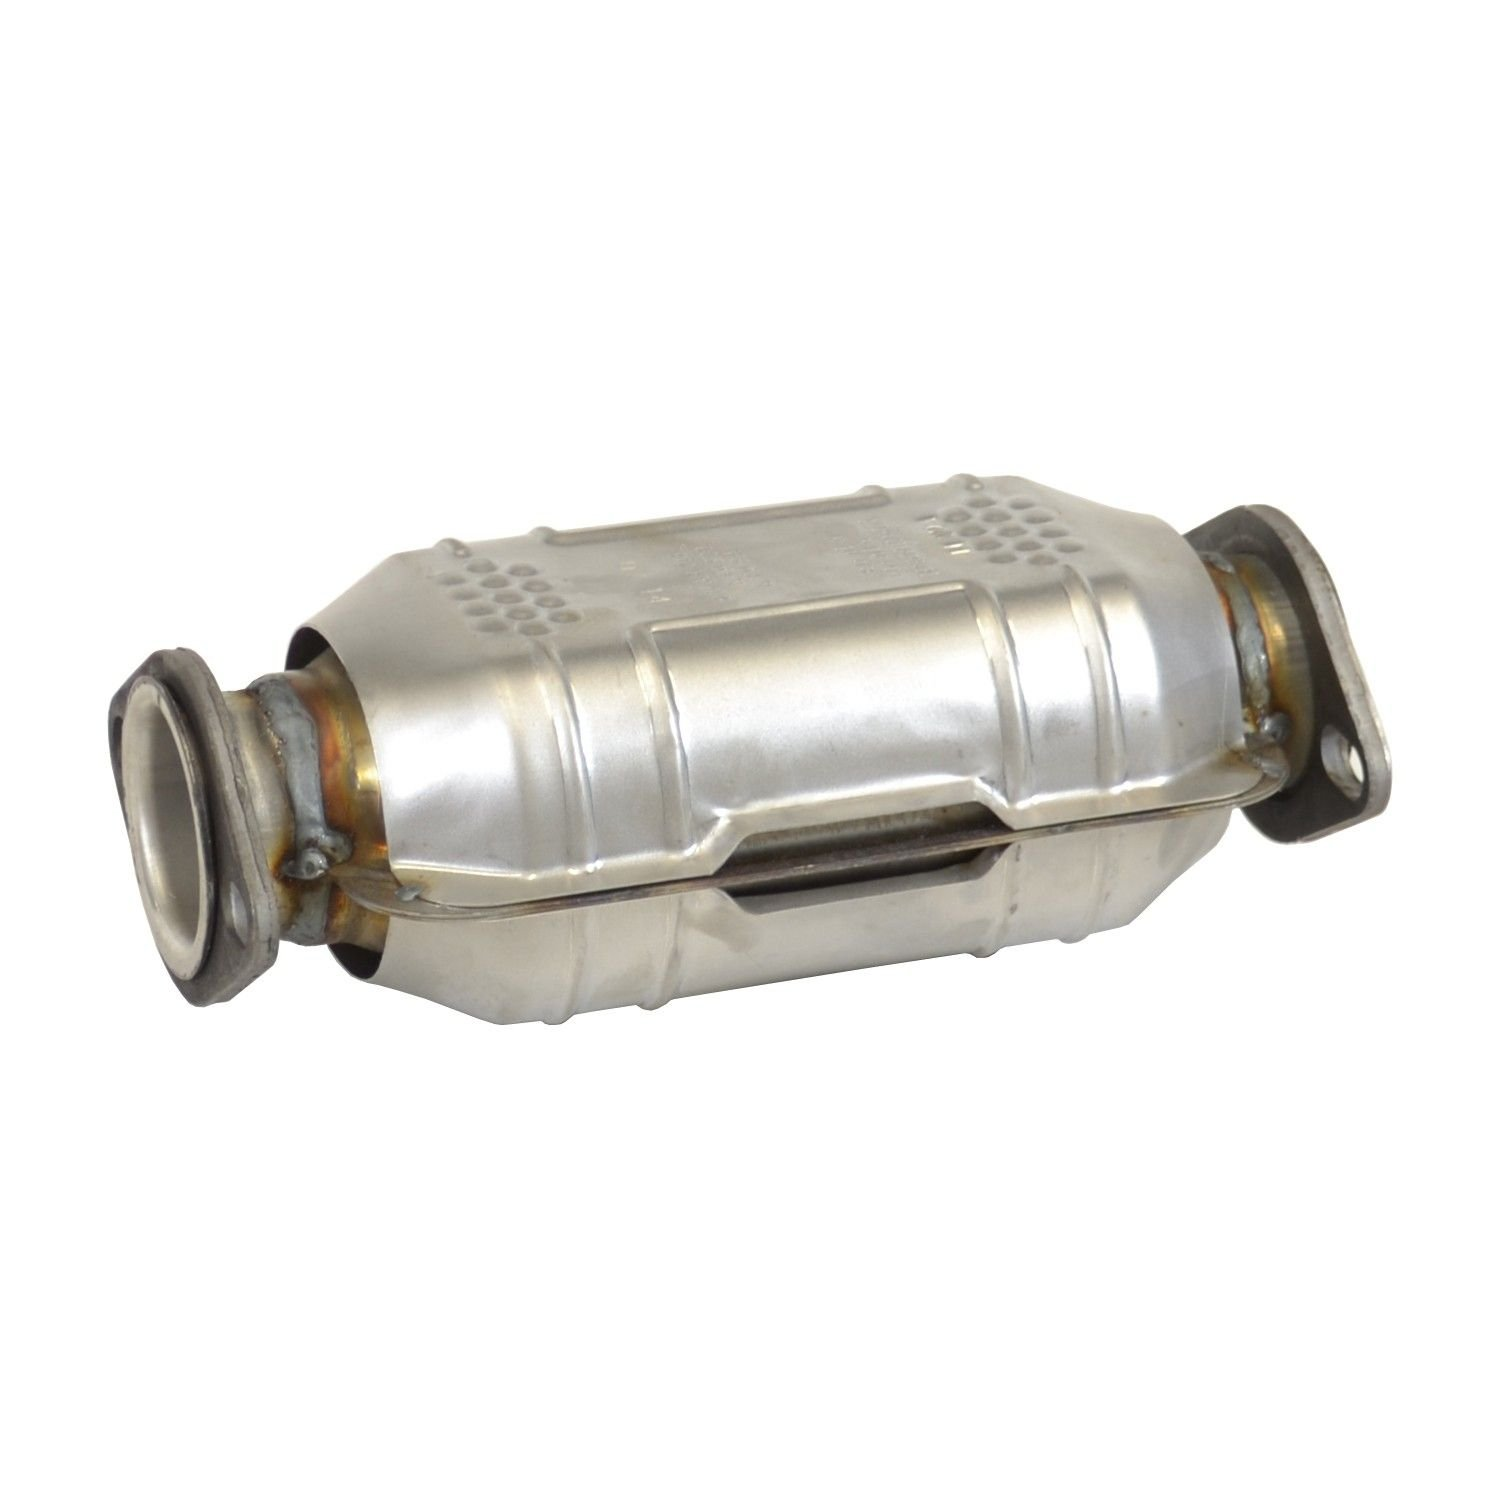 2000 Nissan Maxima Catalytic Converter Replacement